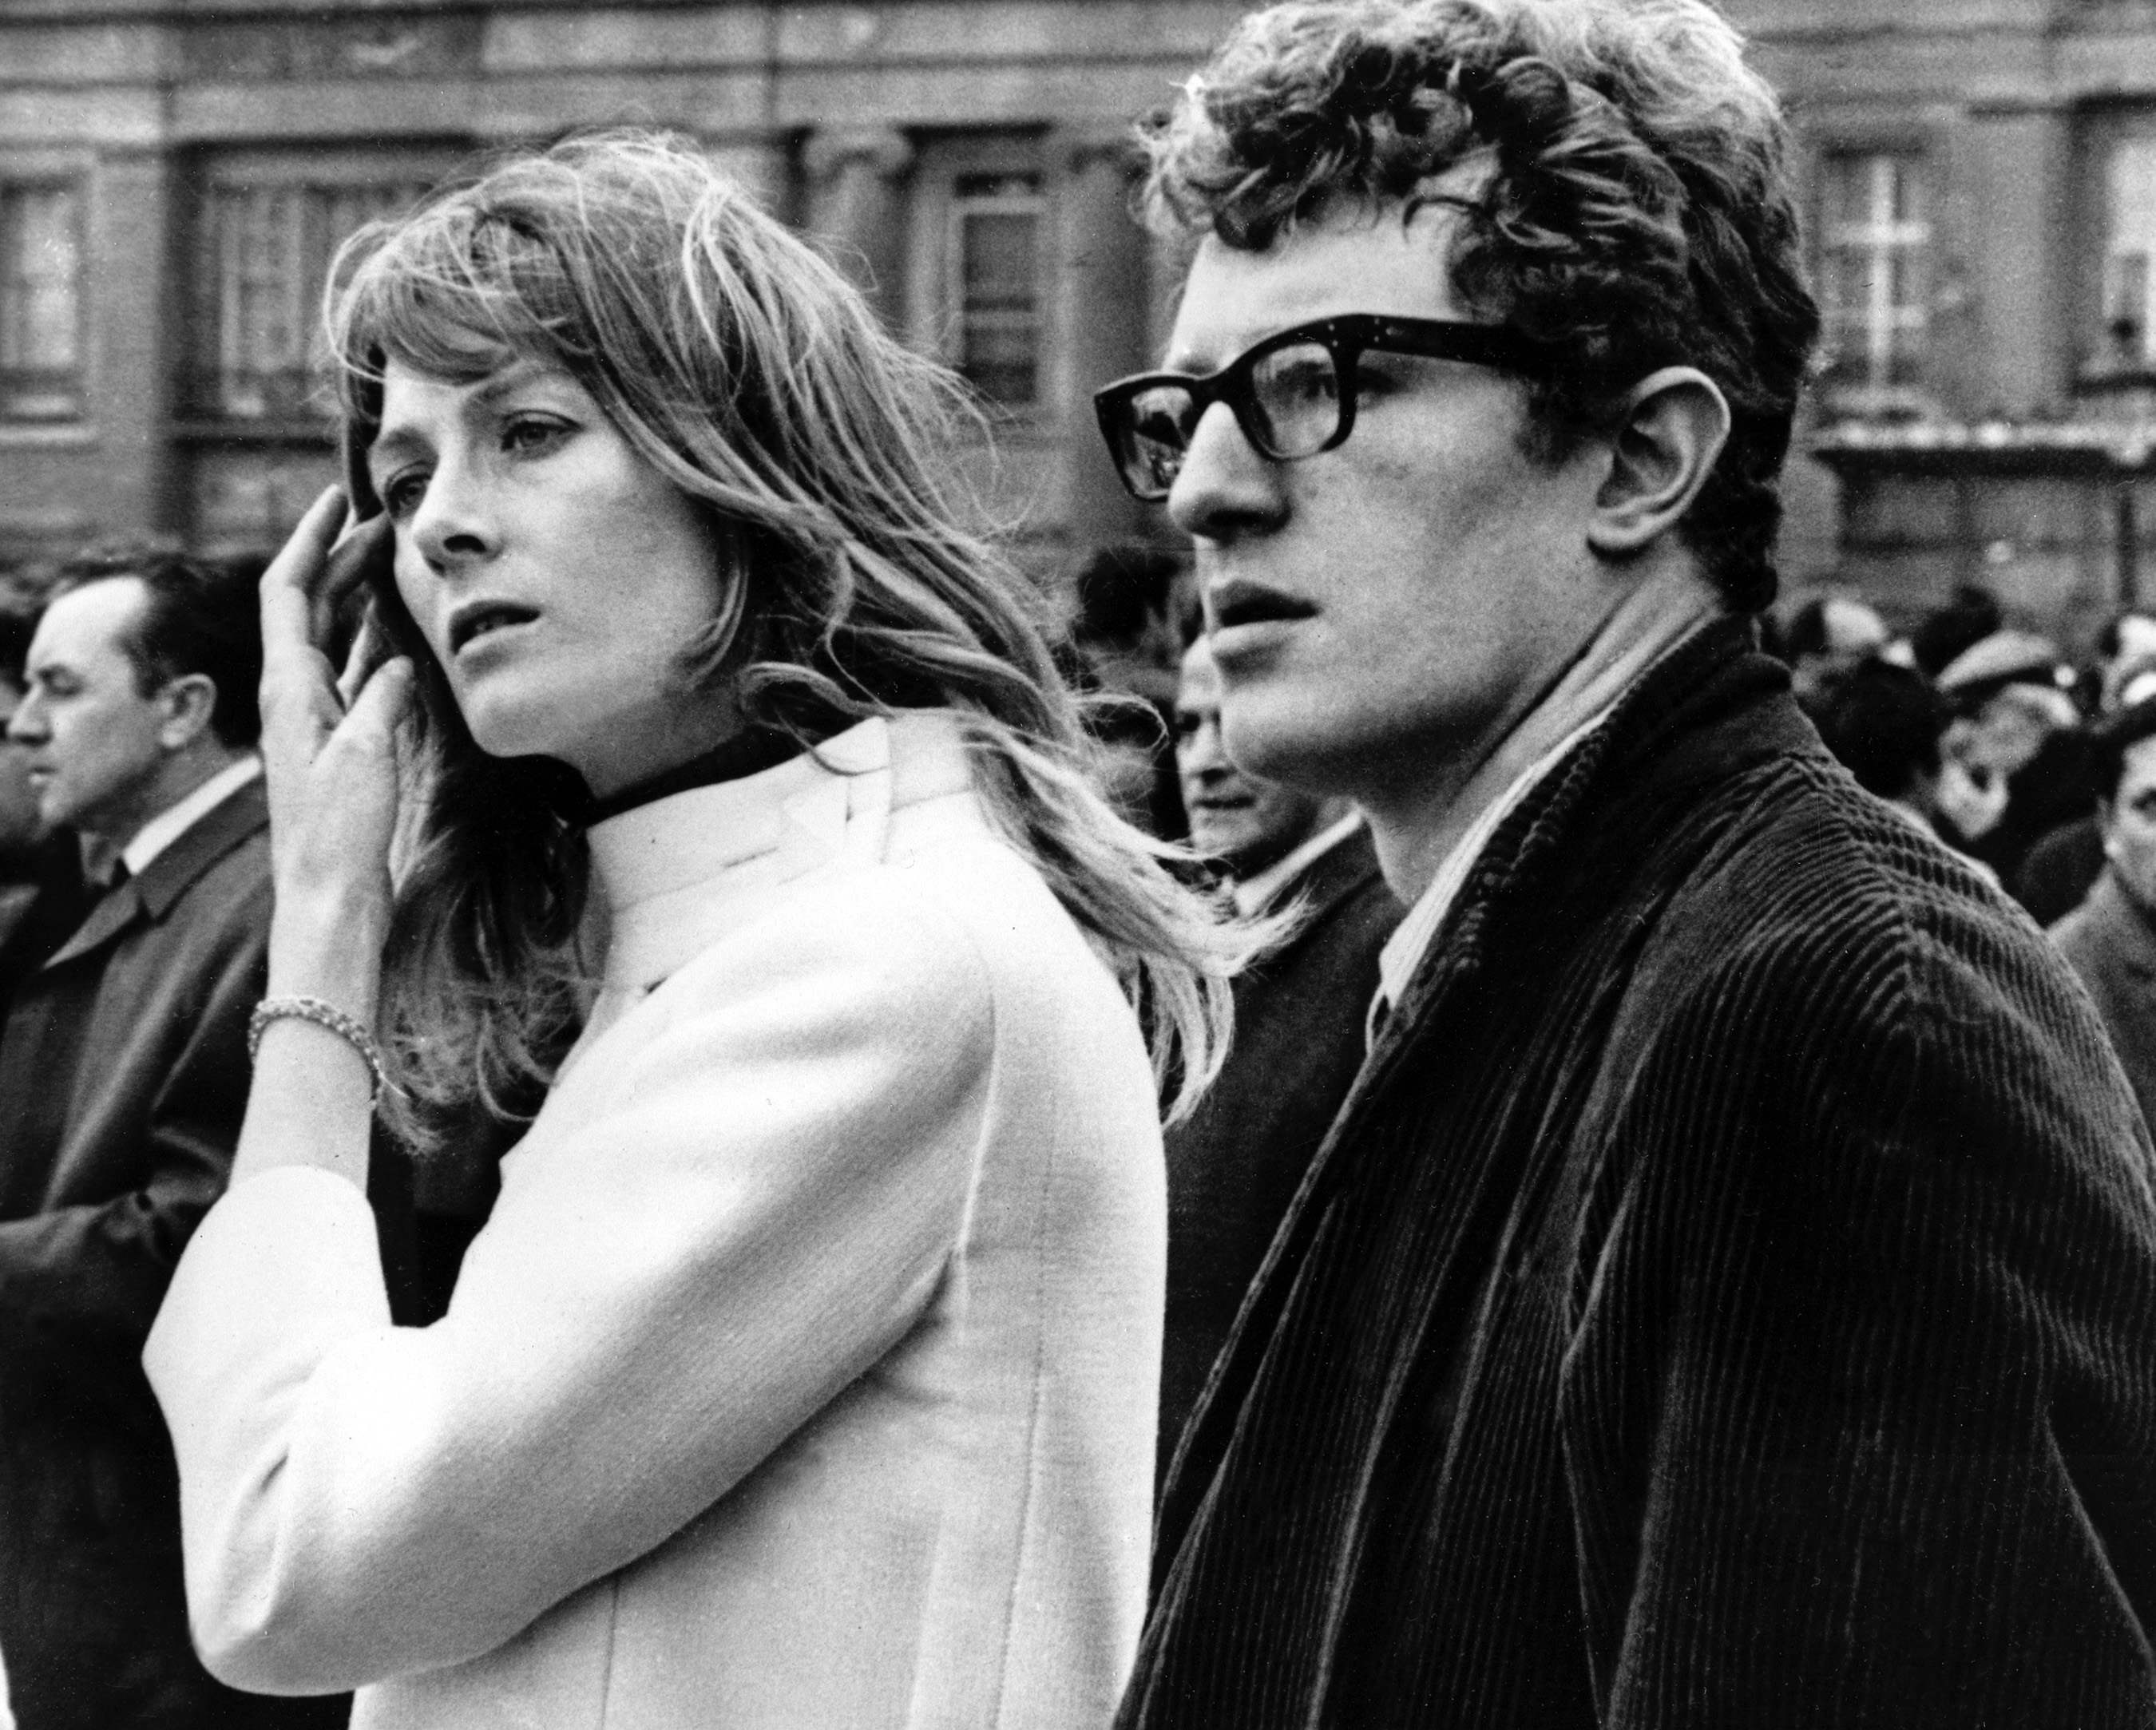 Actress Vanessa Redgrave and her brother Corin, right, are seen during an anti-Vietnam War rally held in Trafalgar Square in London, England, March 24, 1968. The rally is held by the Youth Campaign for Nuclear Disarmament. (AP Photo)